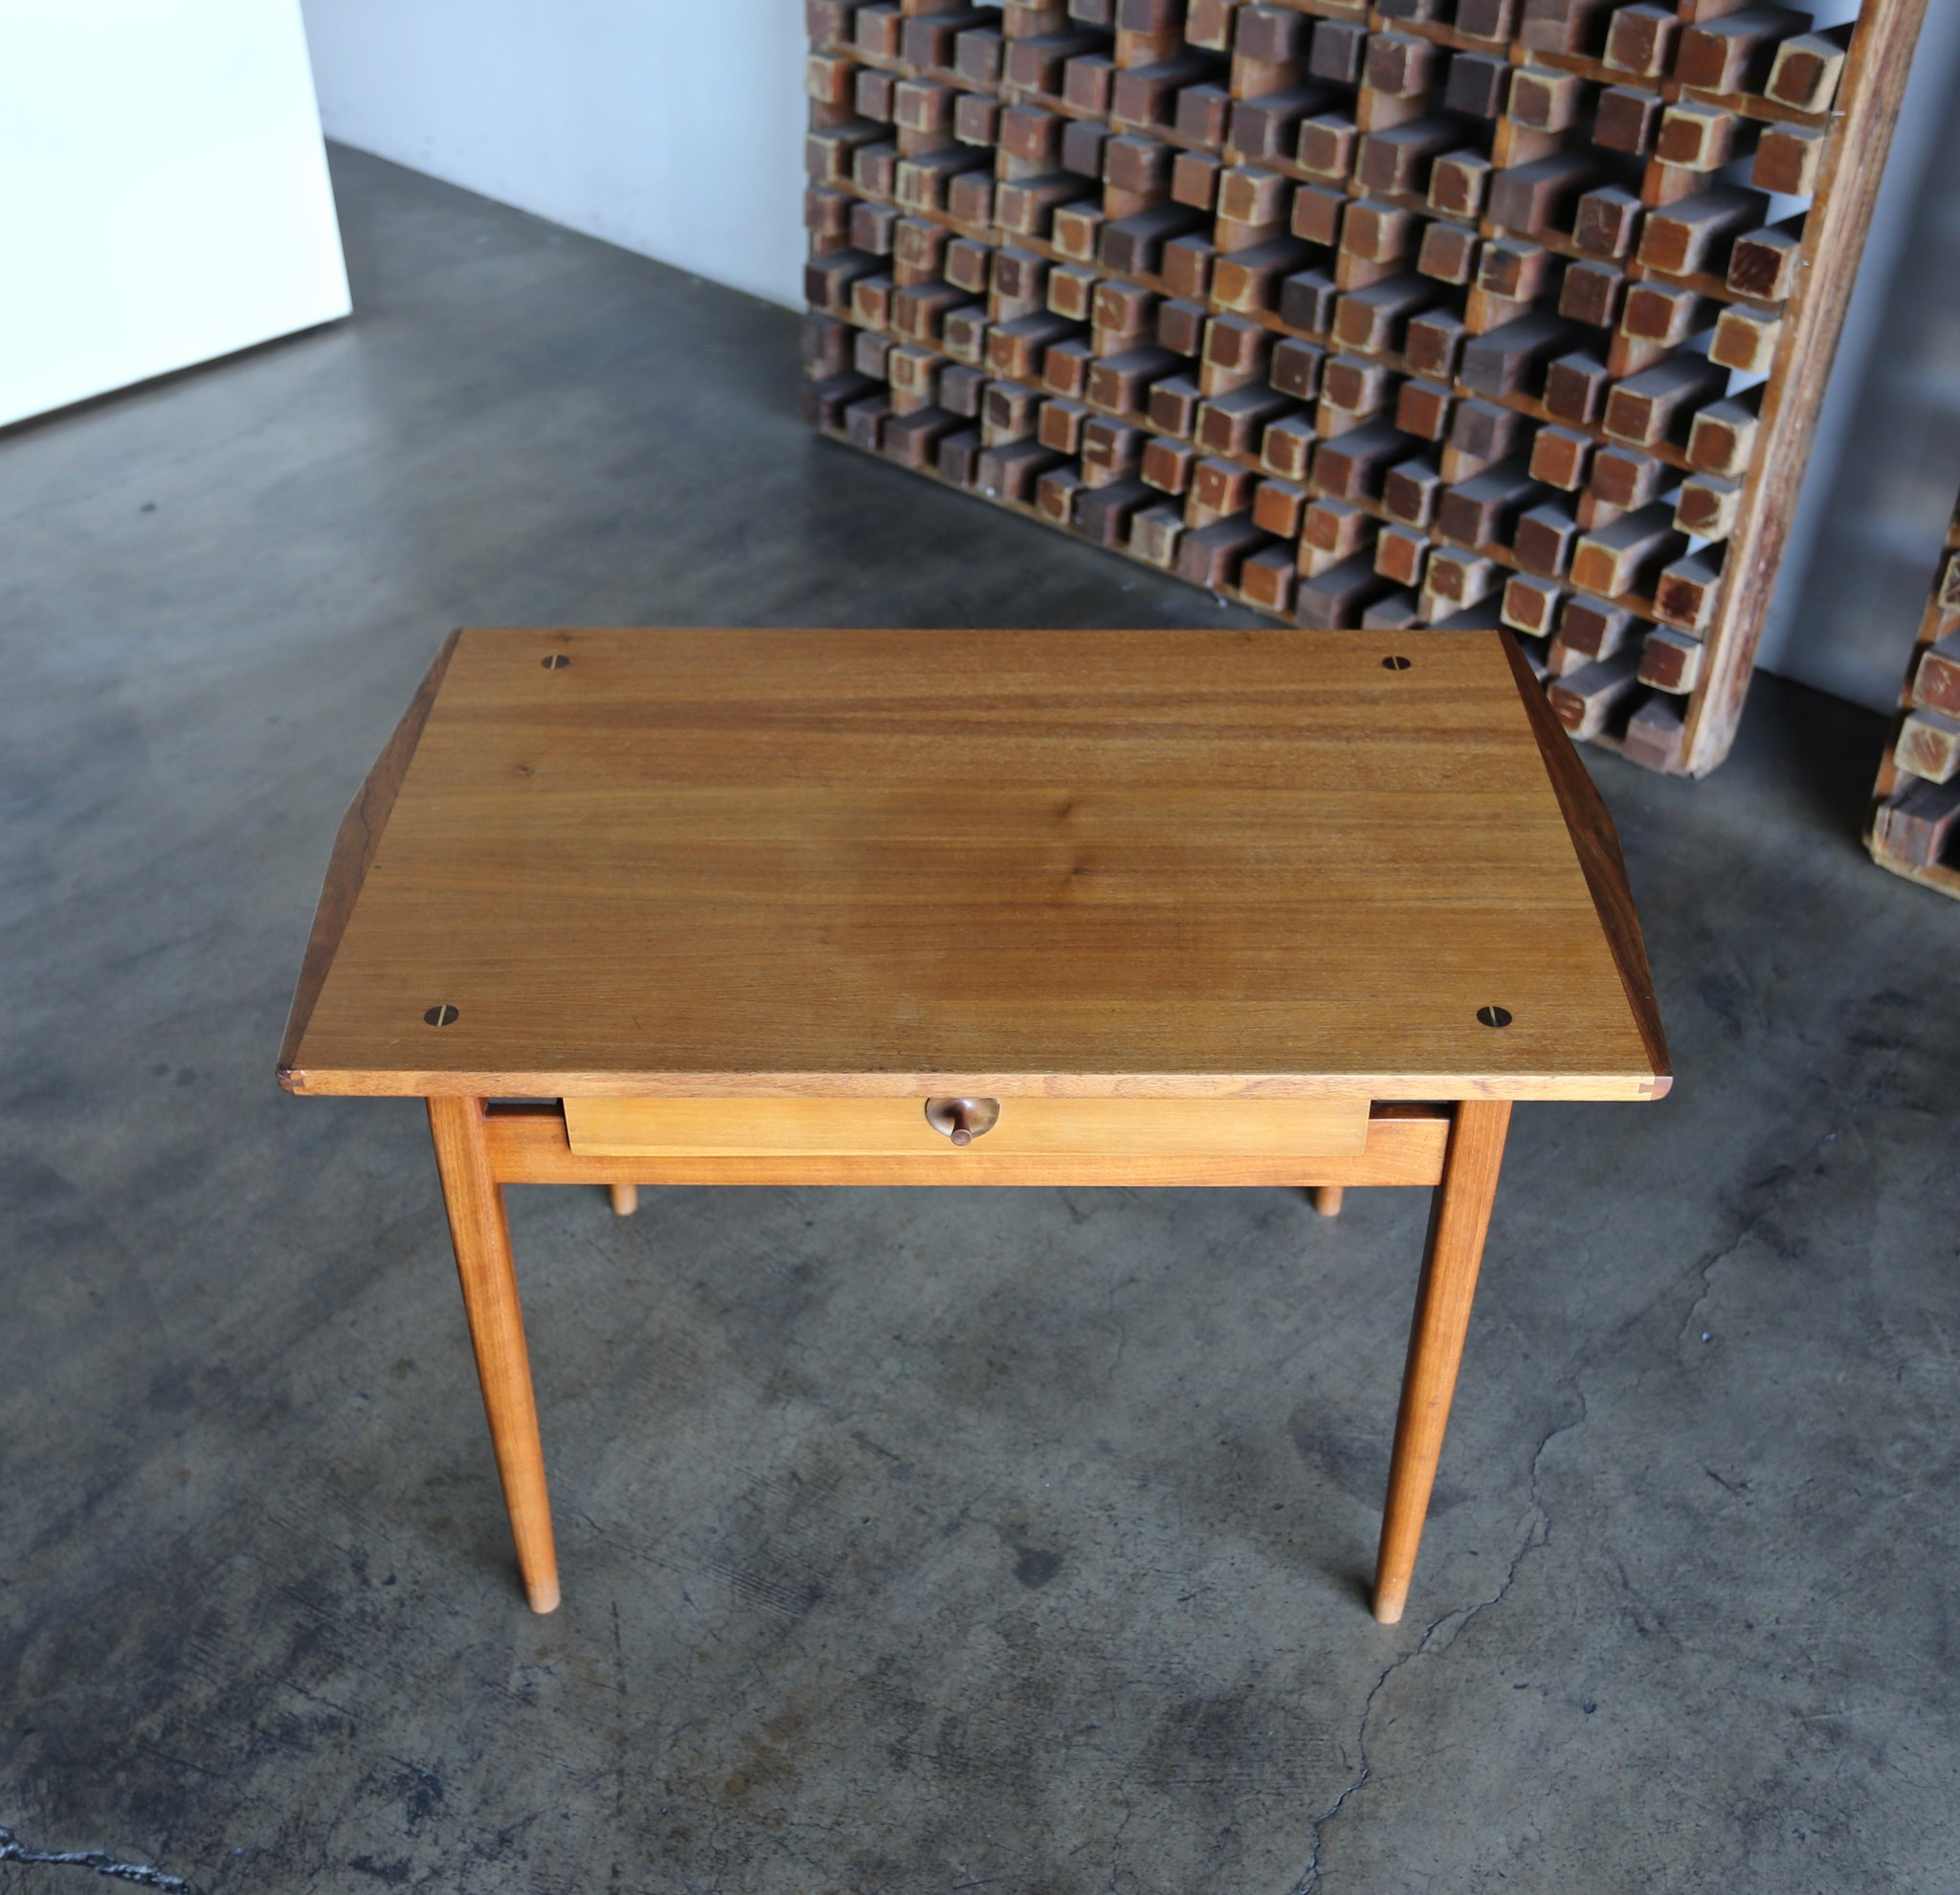 John Kapel Hand Crafted Side / Entry Table circa 1956